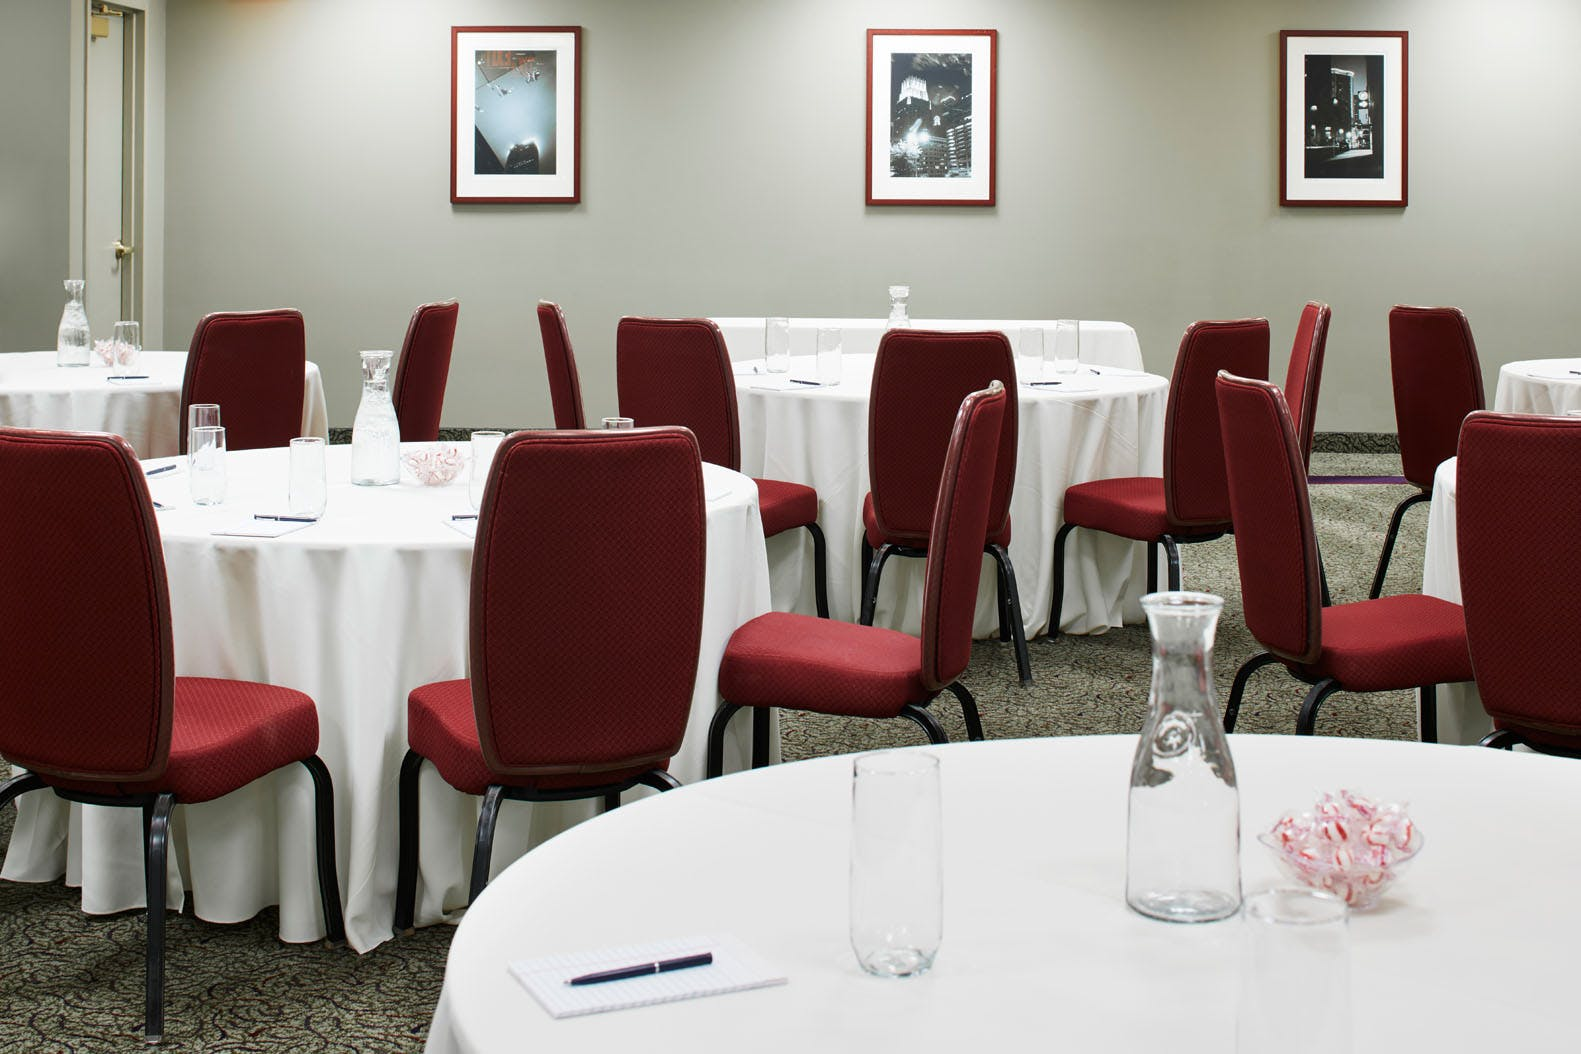 Meetings & Events Spaces at Club Quarters Hotel in Houston